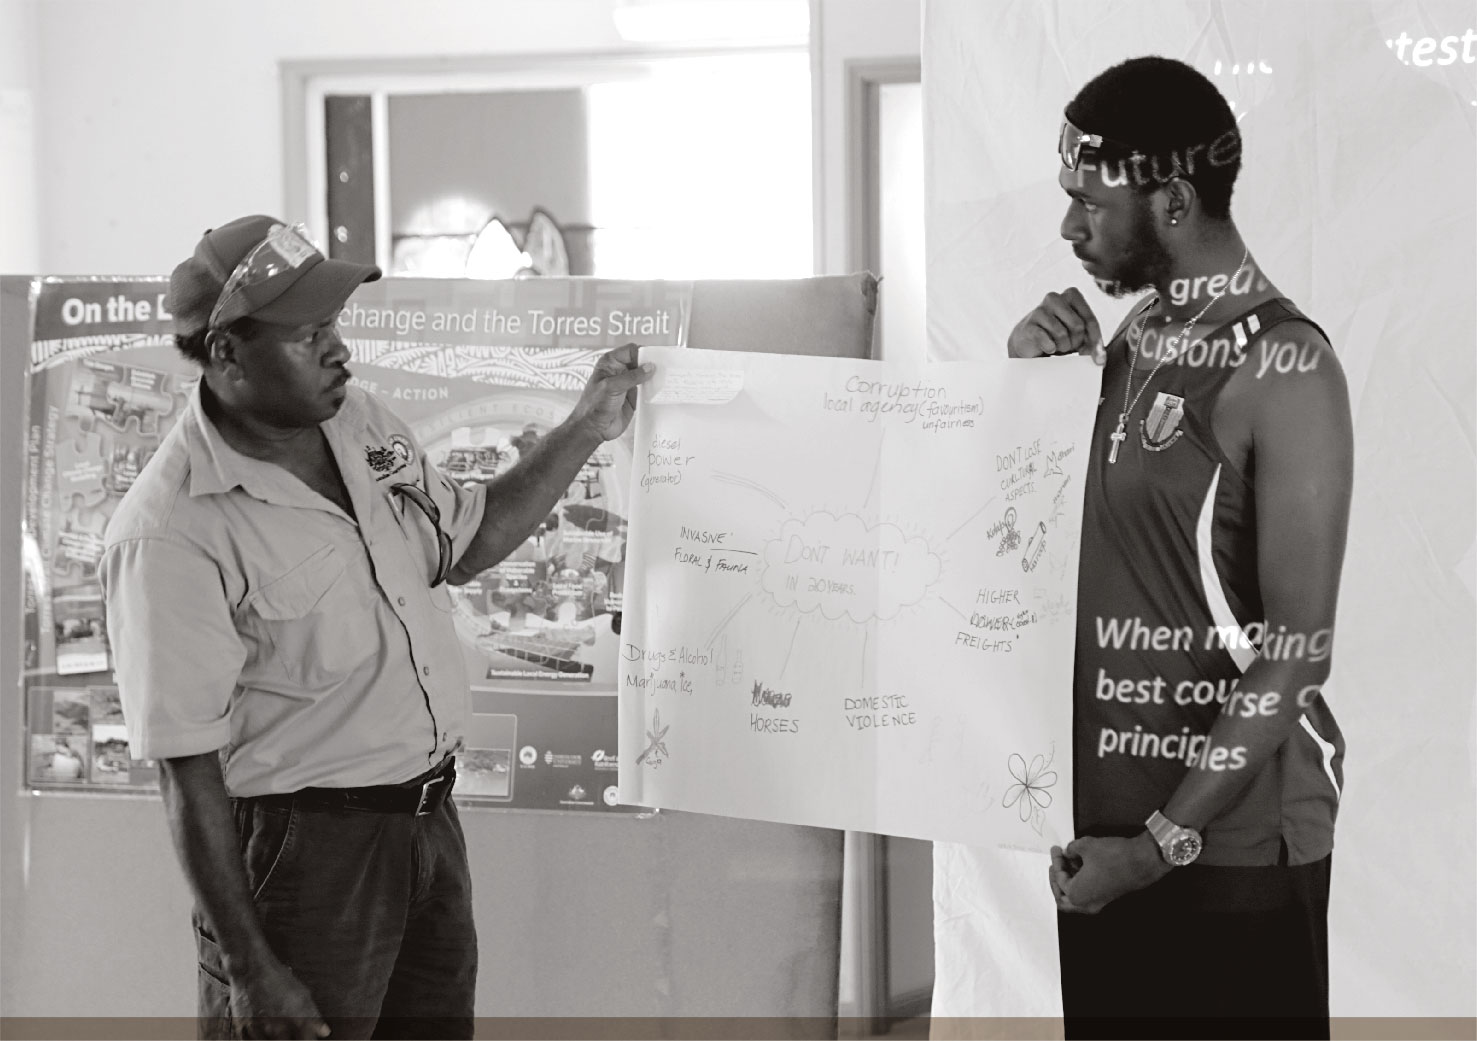 a photograph of TSRA RANGER JOHN WIGNESS AND A COMMUNITY MEMBER AT A CLIMATE CHANGE WORKSHOP IN KUBIN.